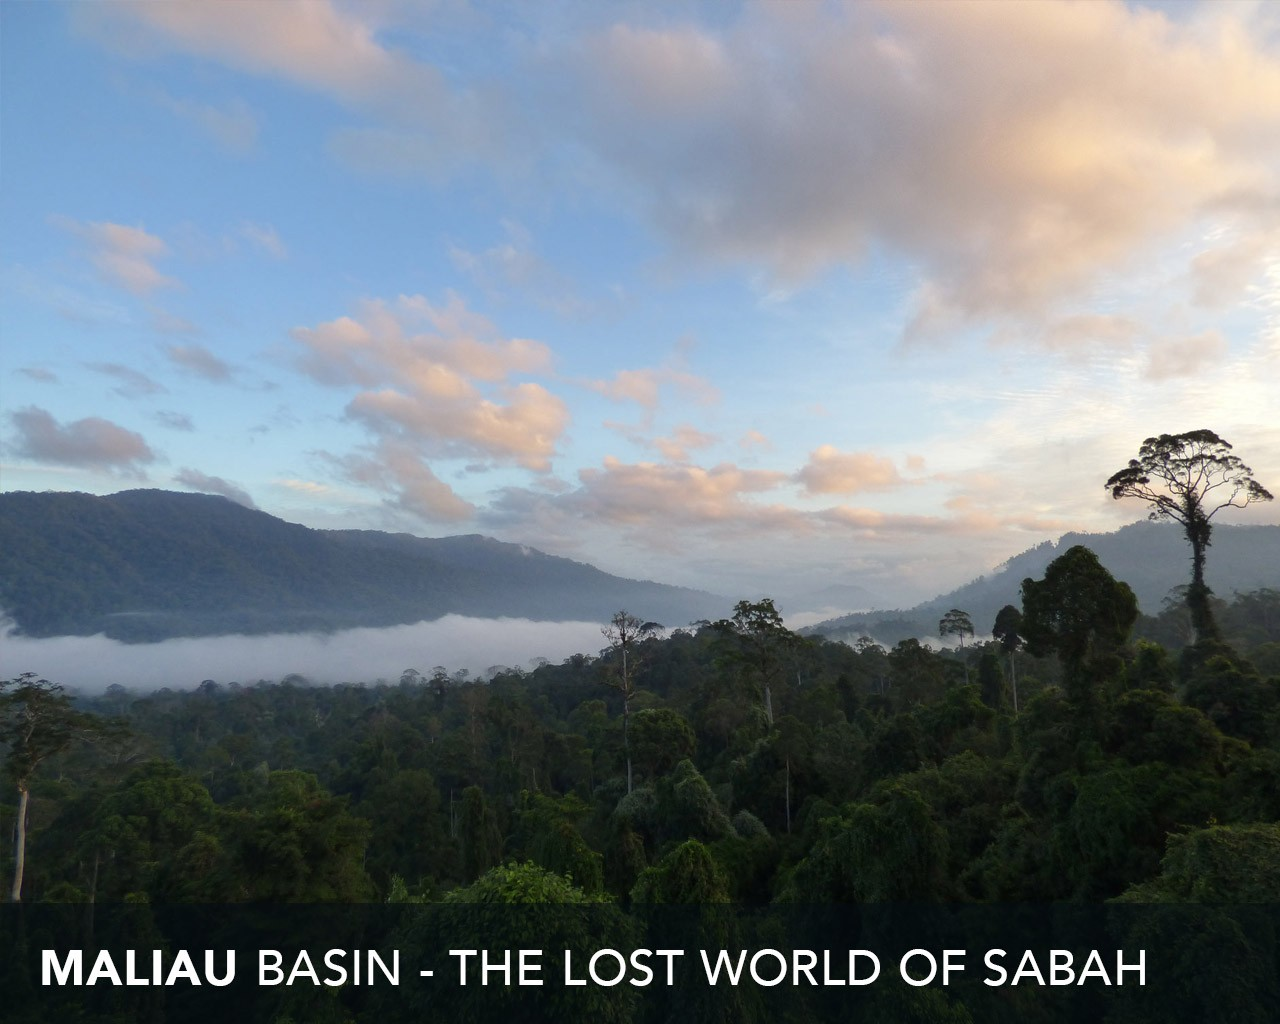 Maliau Basin - The Lost World of Sabah